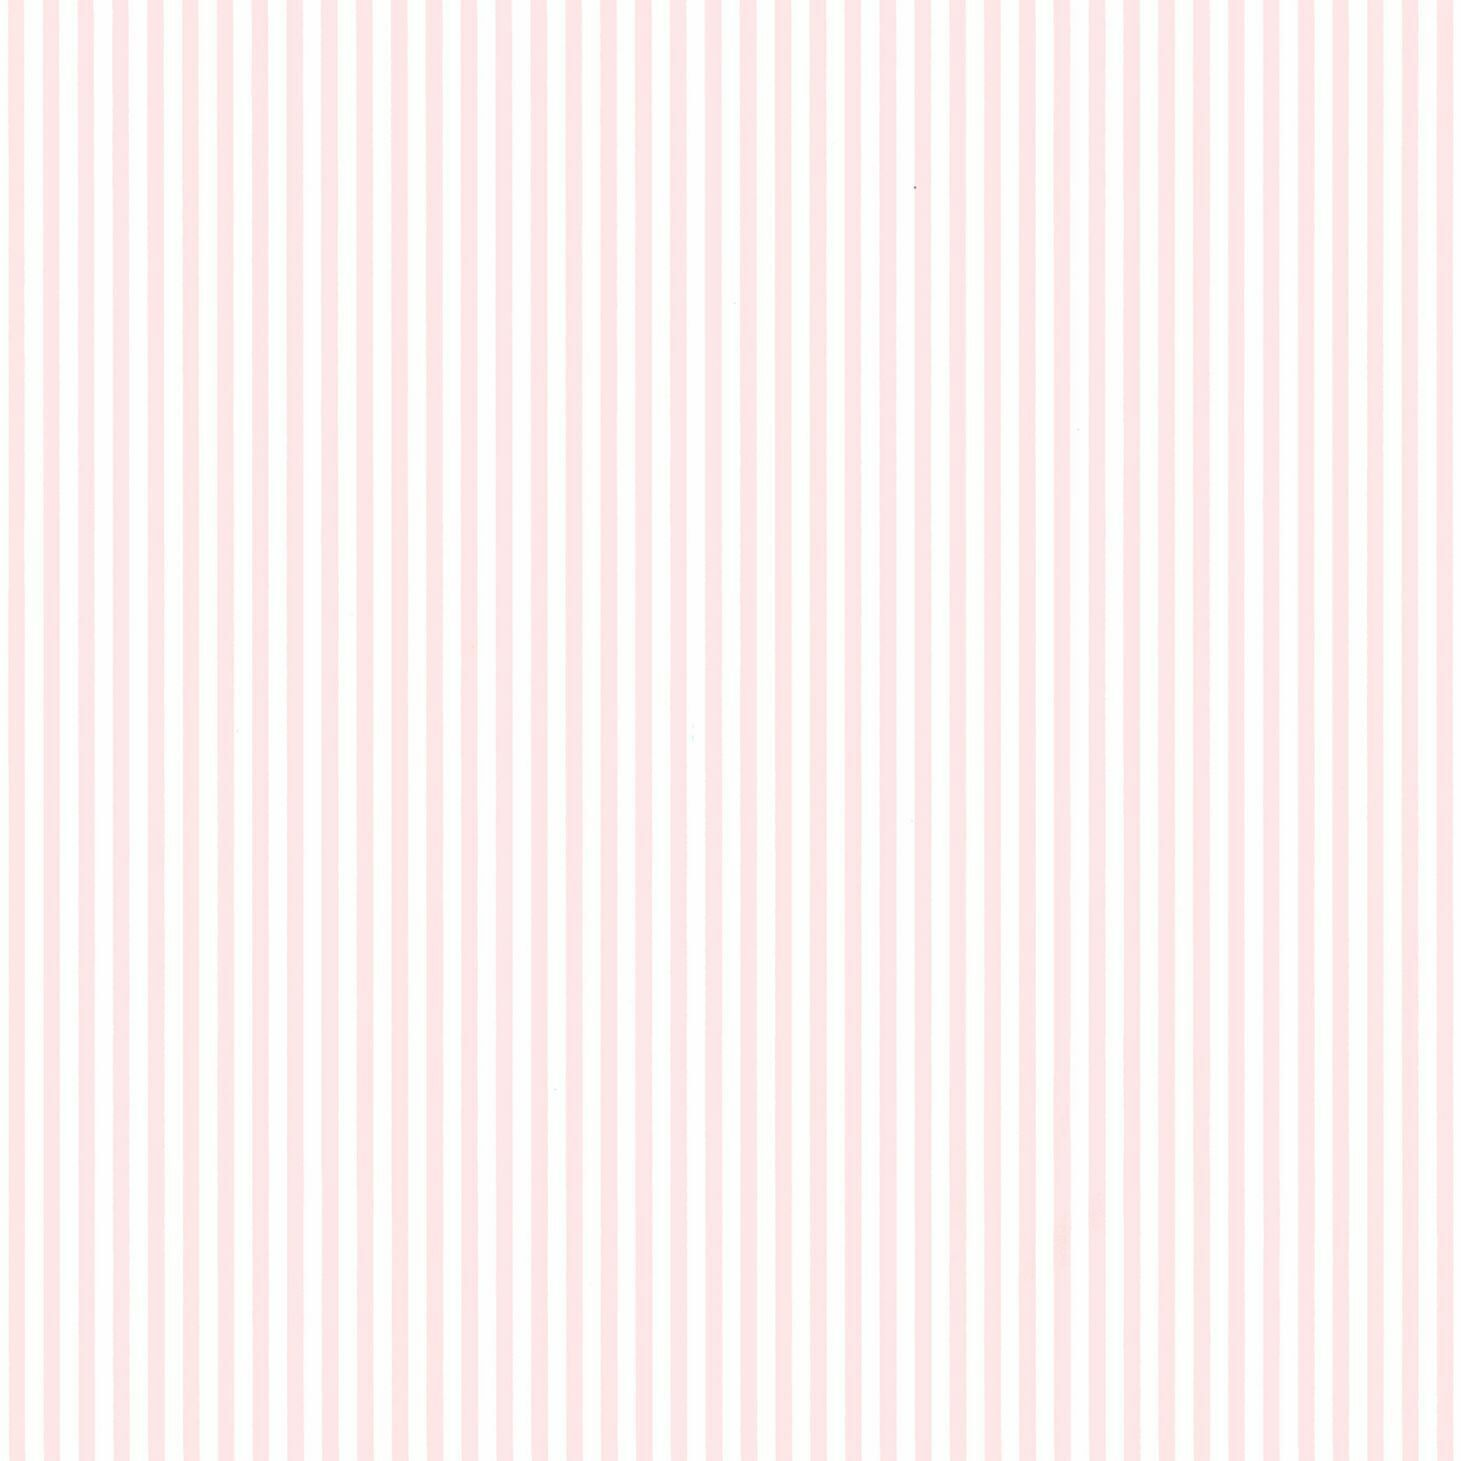 Essener Tapete Simply Stripes 3 Pr33833 Pink Stripes Striped Vinyl Wallpaper